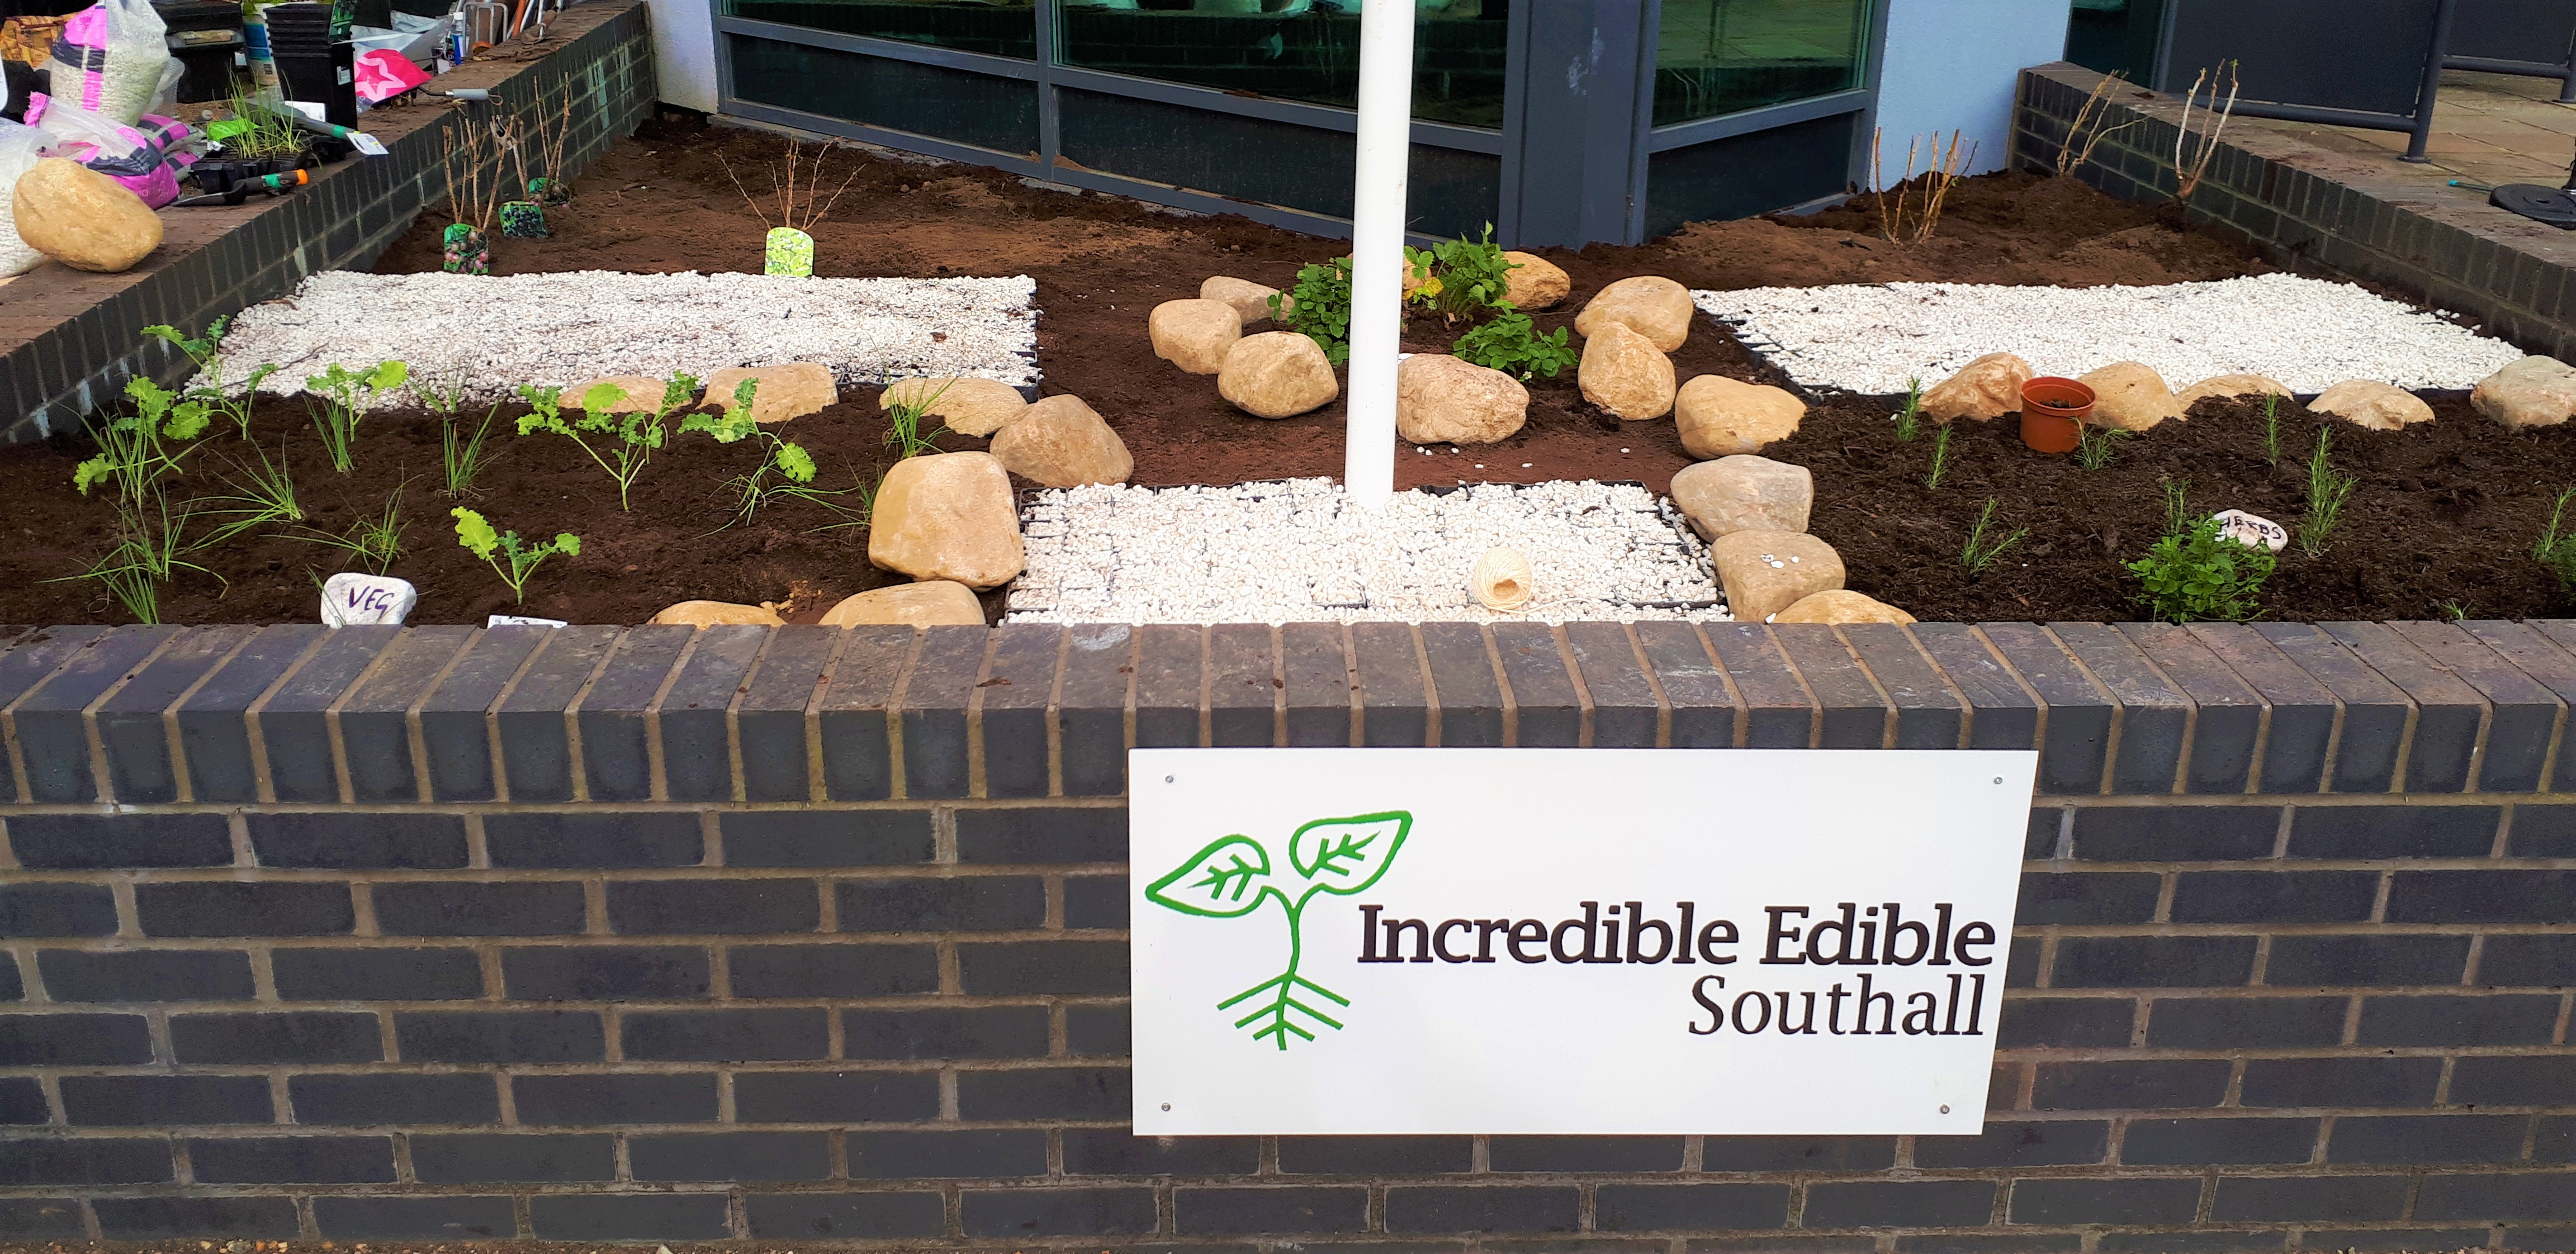 The first Incredible Edible garden in Ealing comes to Southall Community College